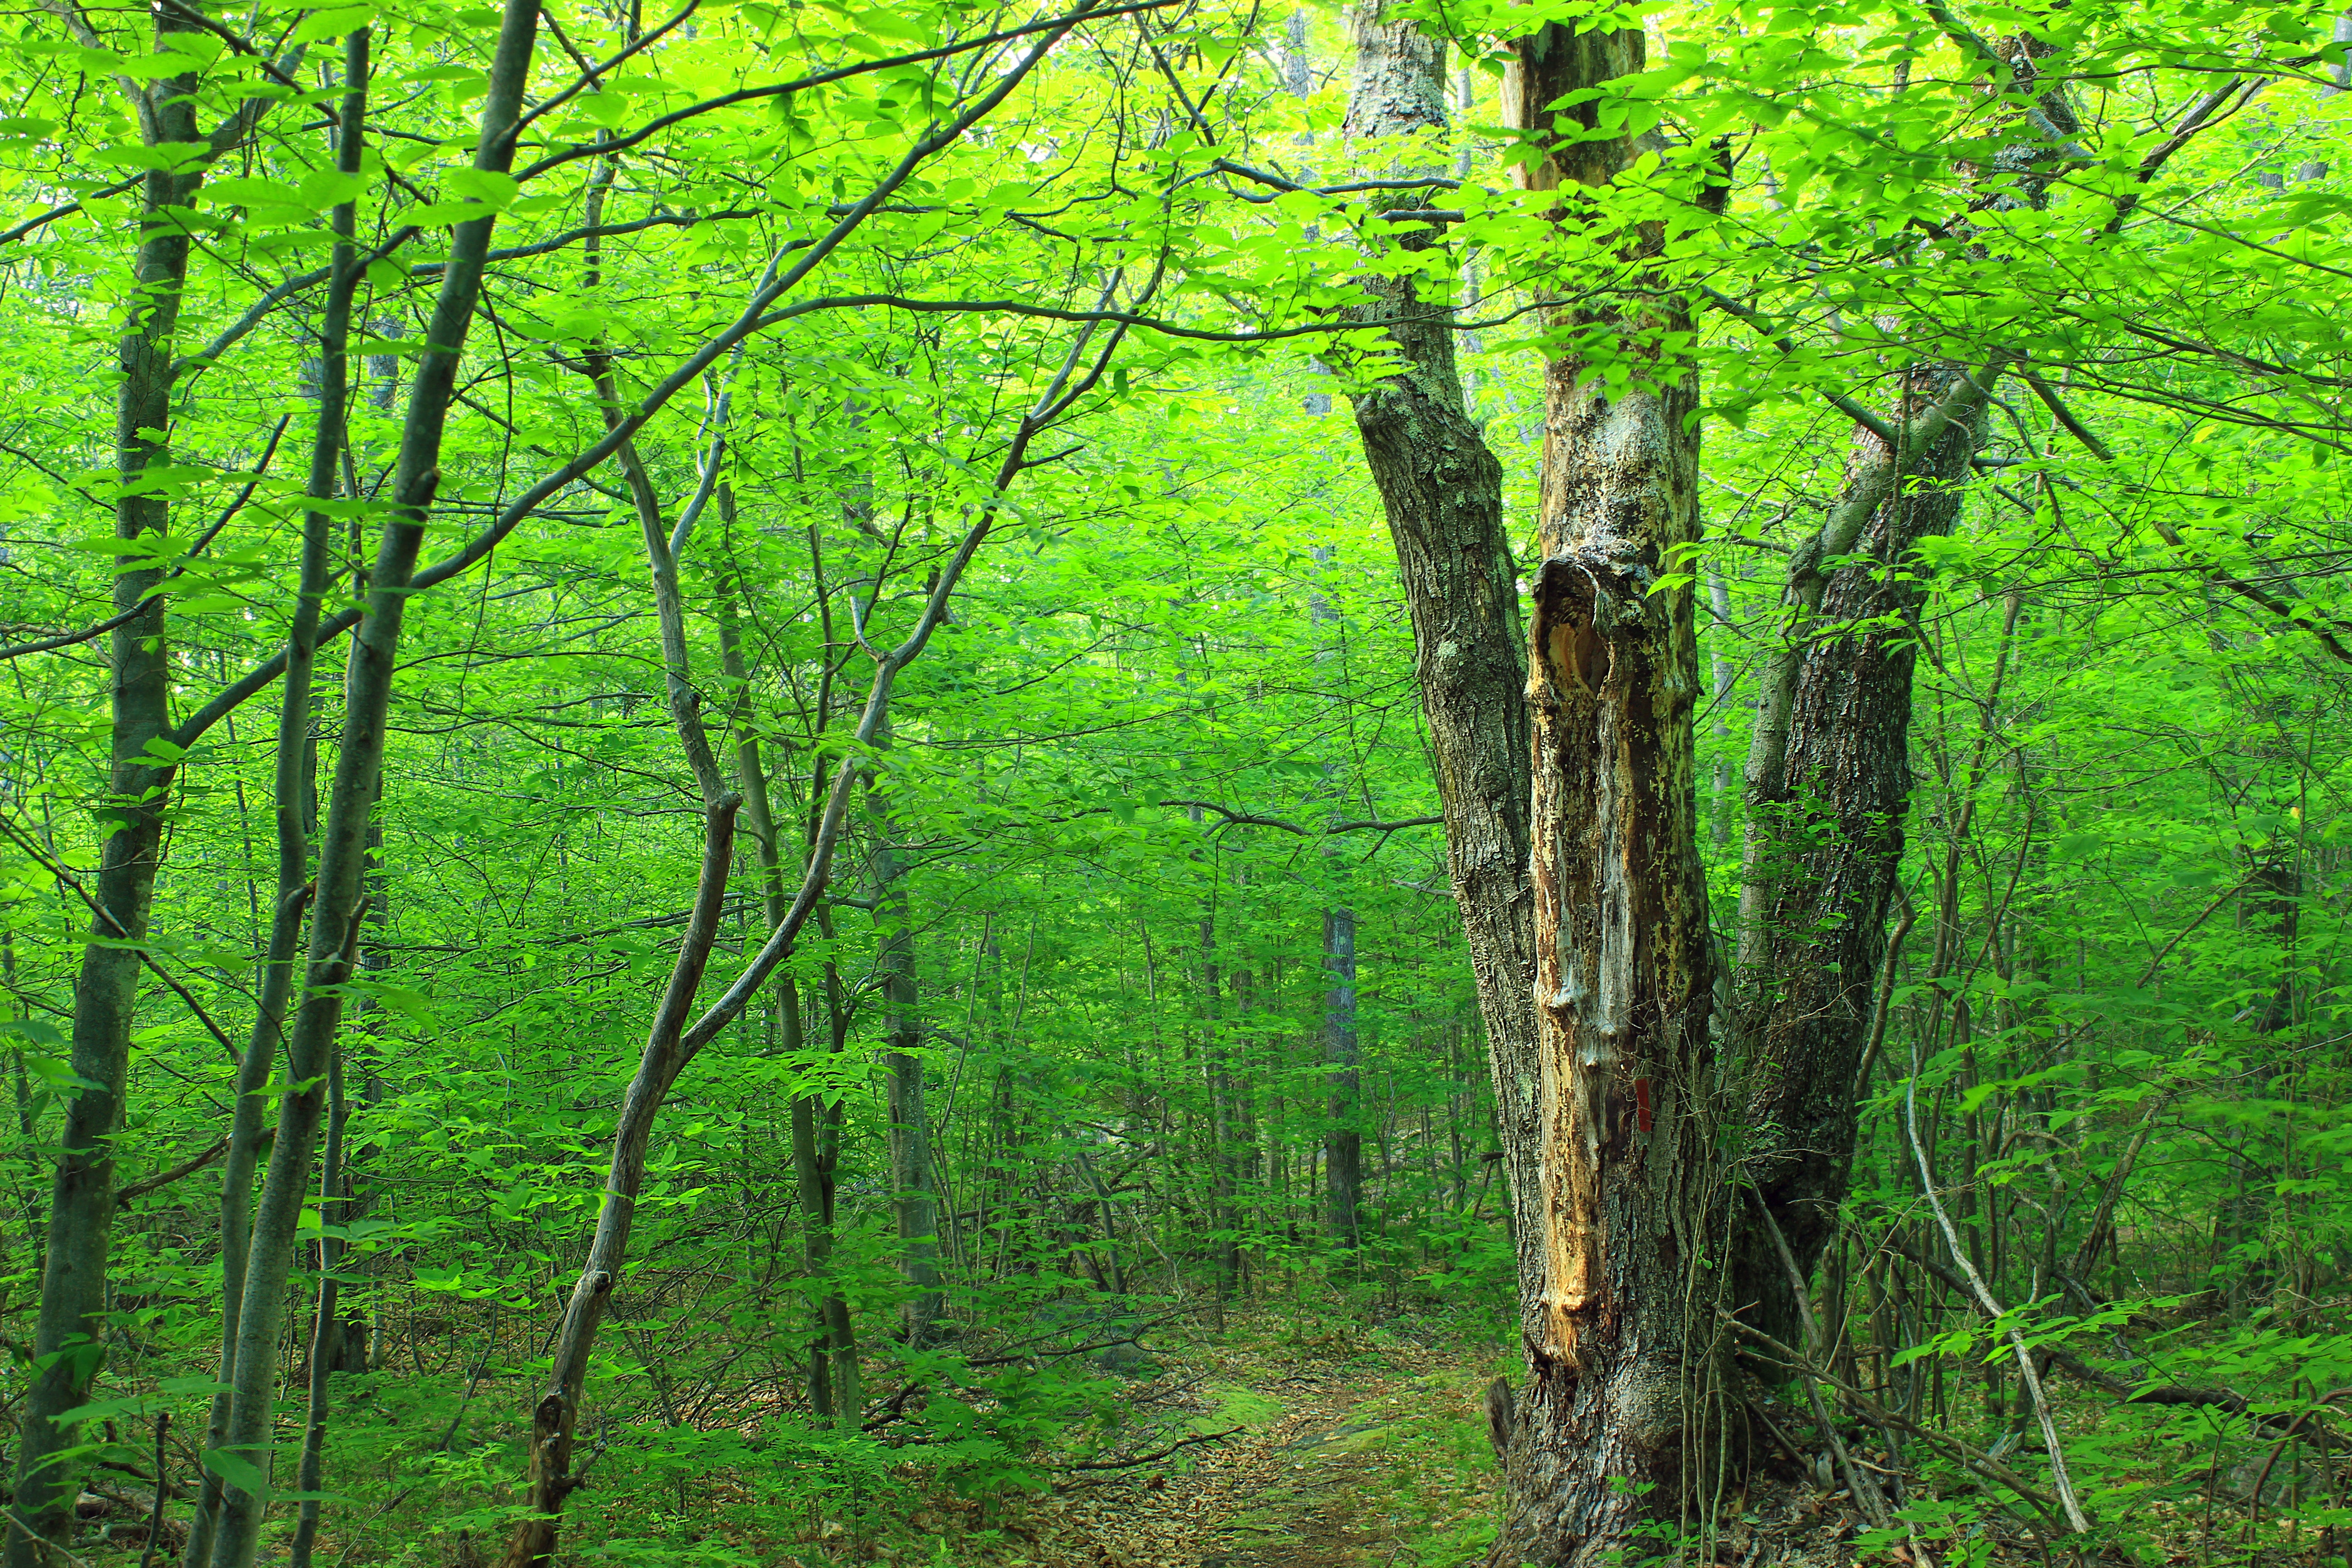 Brown Trunk Green Leaves Tree on Forest, Forest, Landscape, Nature, Outdoors, HQ Photo